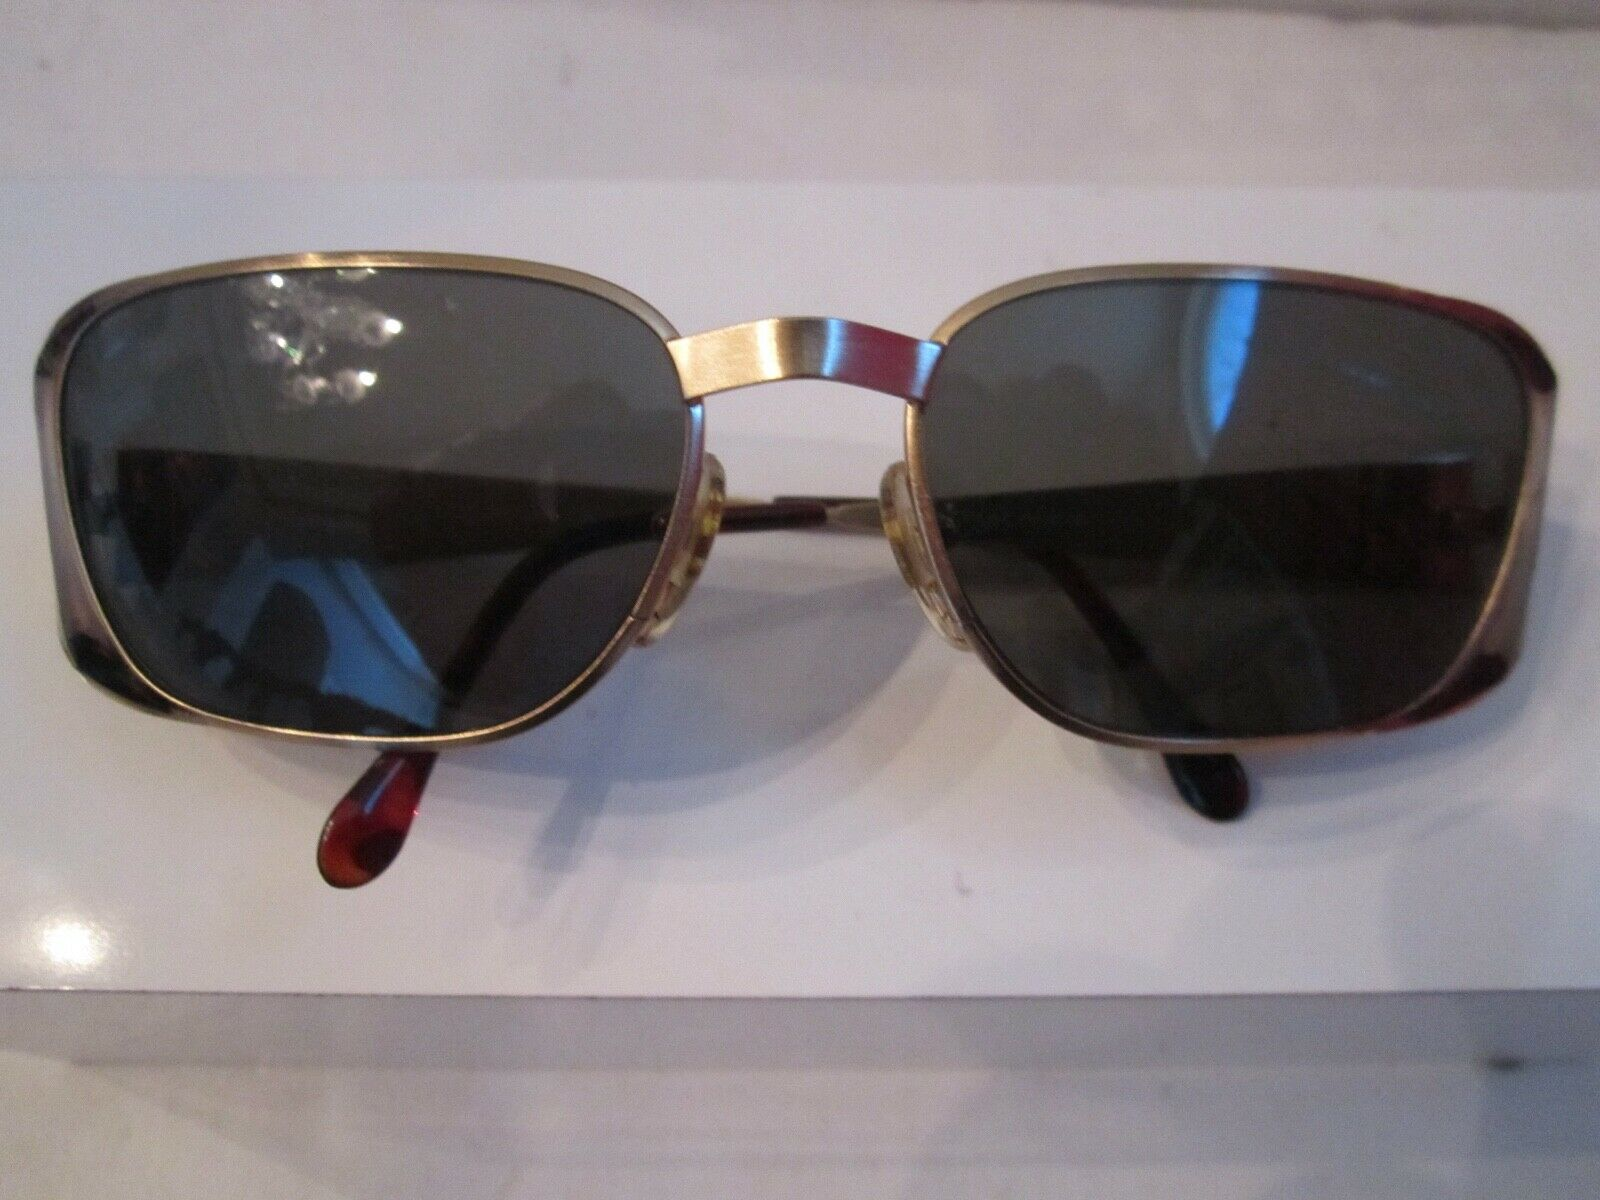 CHRISTIAN ROTH SUNGLASSES - SERIES 7201 02 - MADE IN ITALY